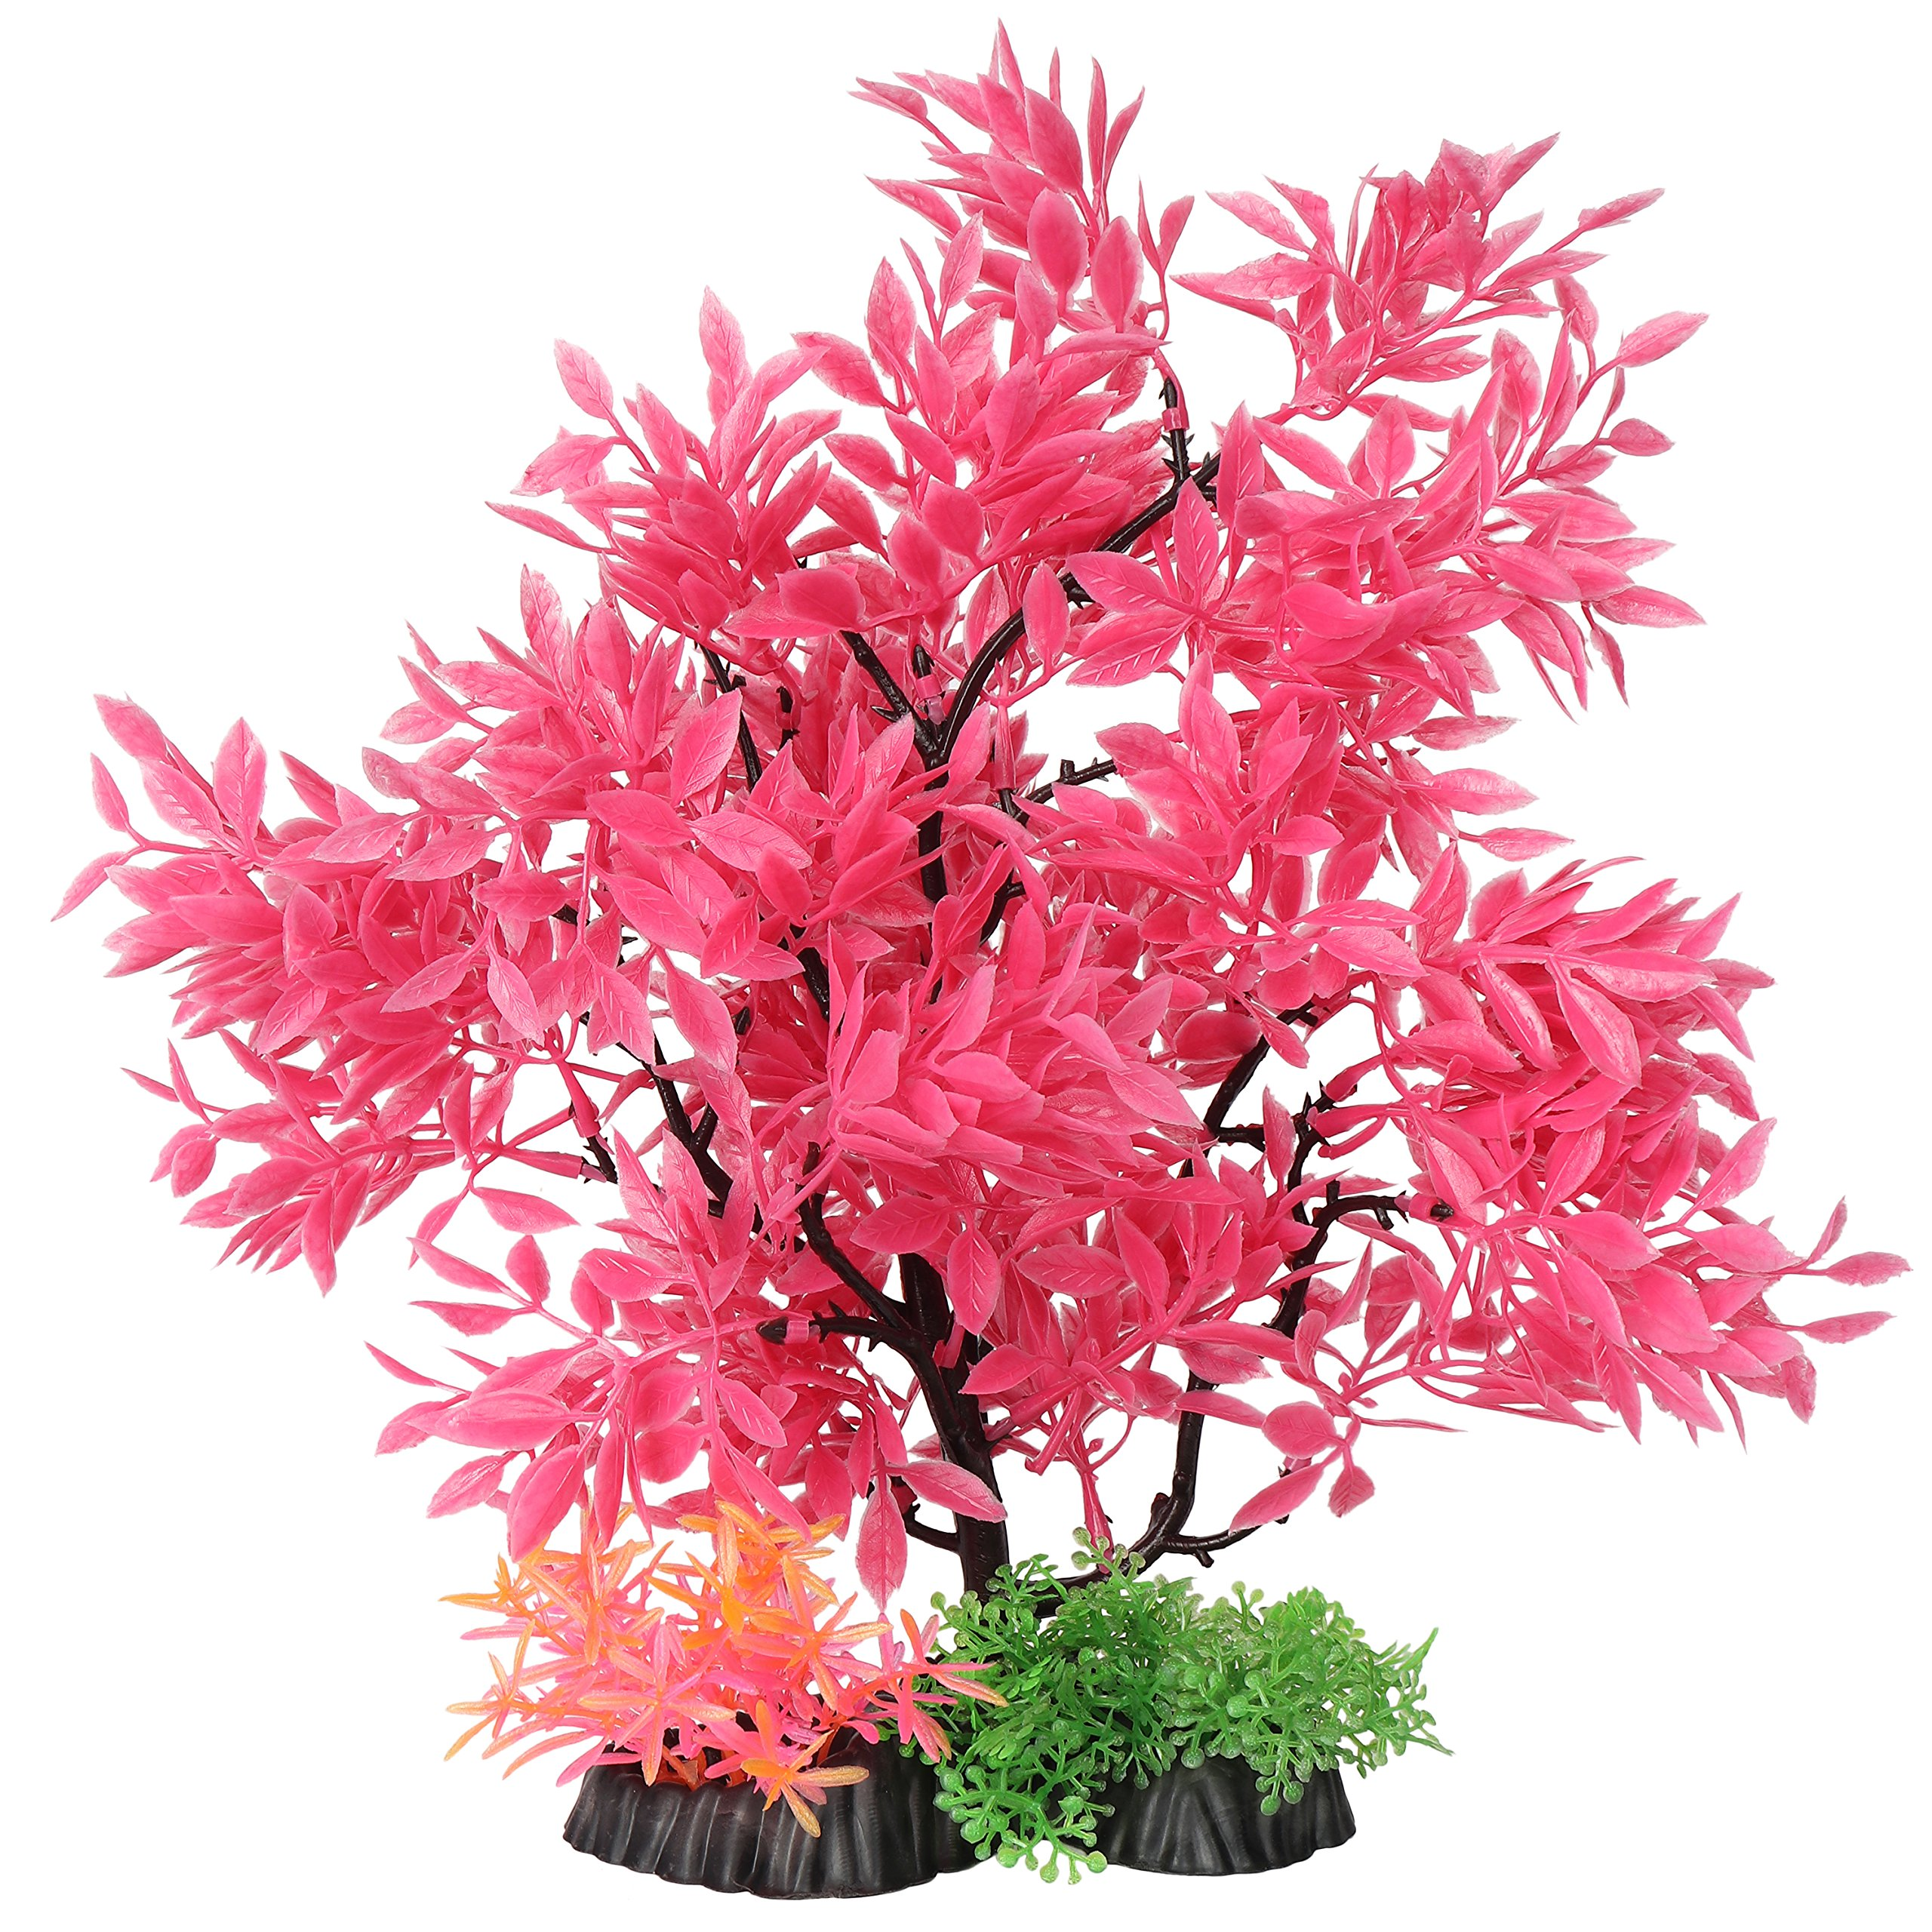 Amazon price history for Aquarium Decoration Artificial Pink Plastic Plants with Beautiful Natural Look